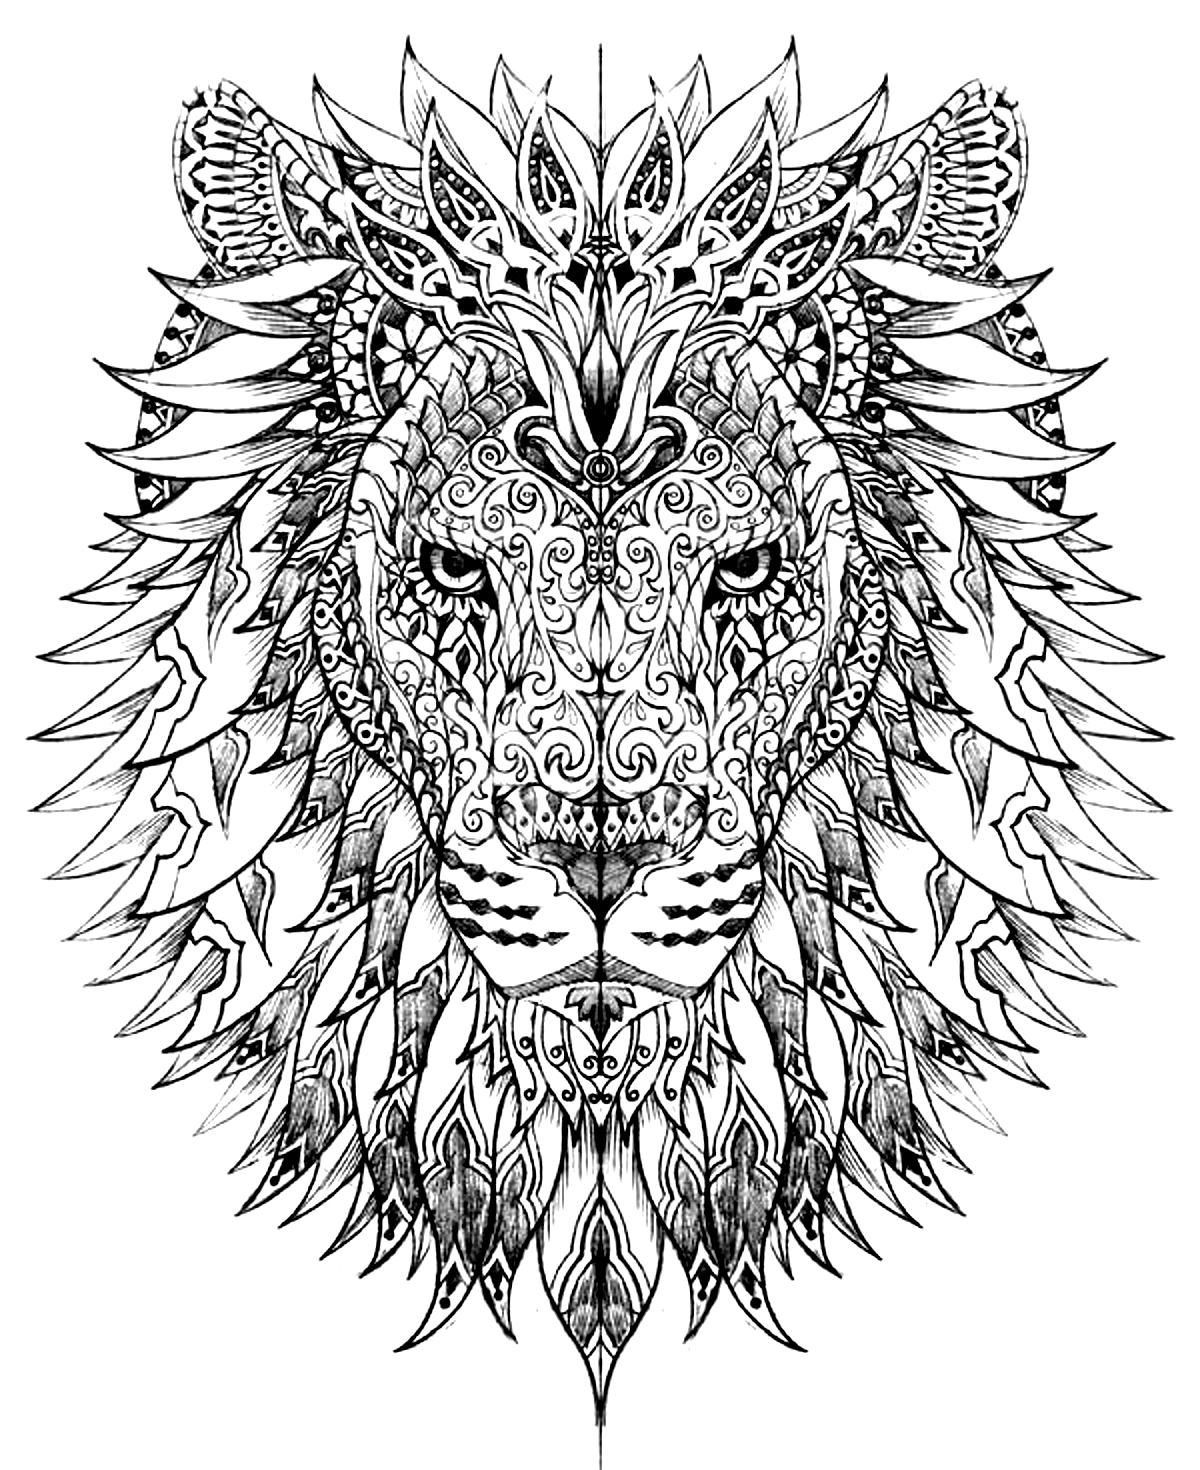 coloring pages for adults lion 3 printable pages for coloring for lion lovers coloring etsy coloring lion adults pages for